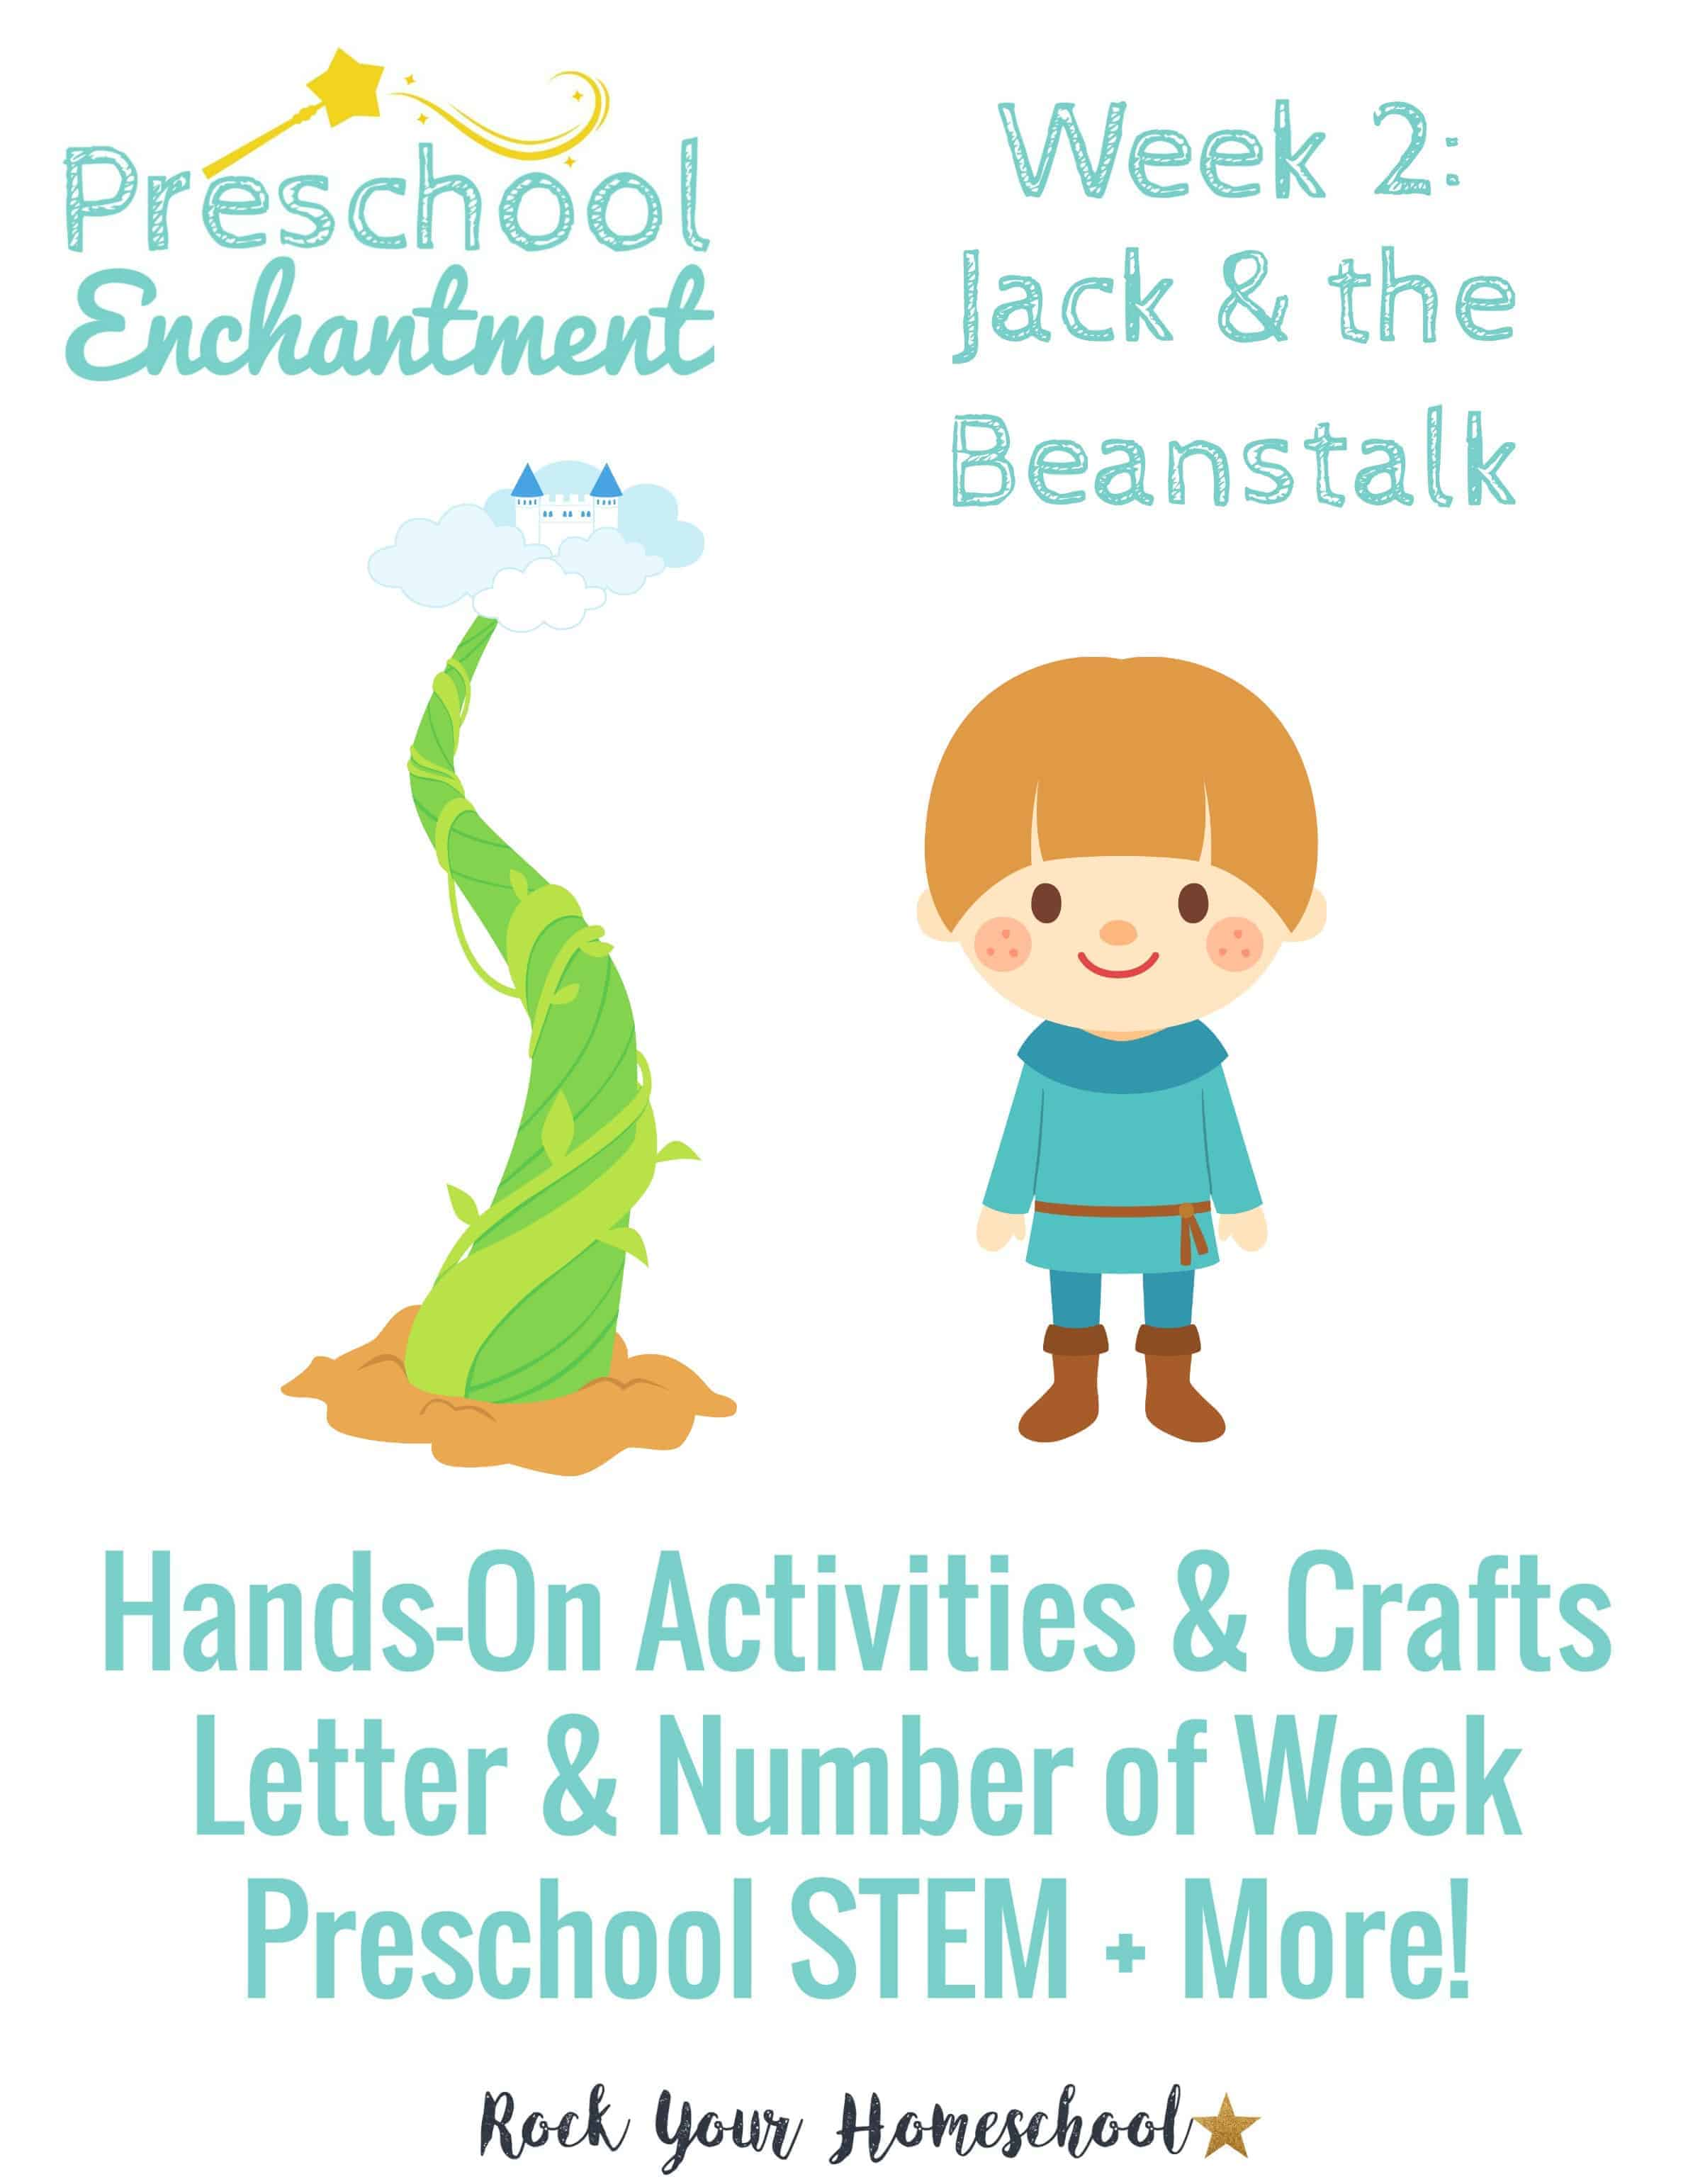 Preschool Enchantment Week 2 Jack Amp The Beanstalk